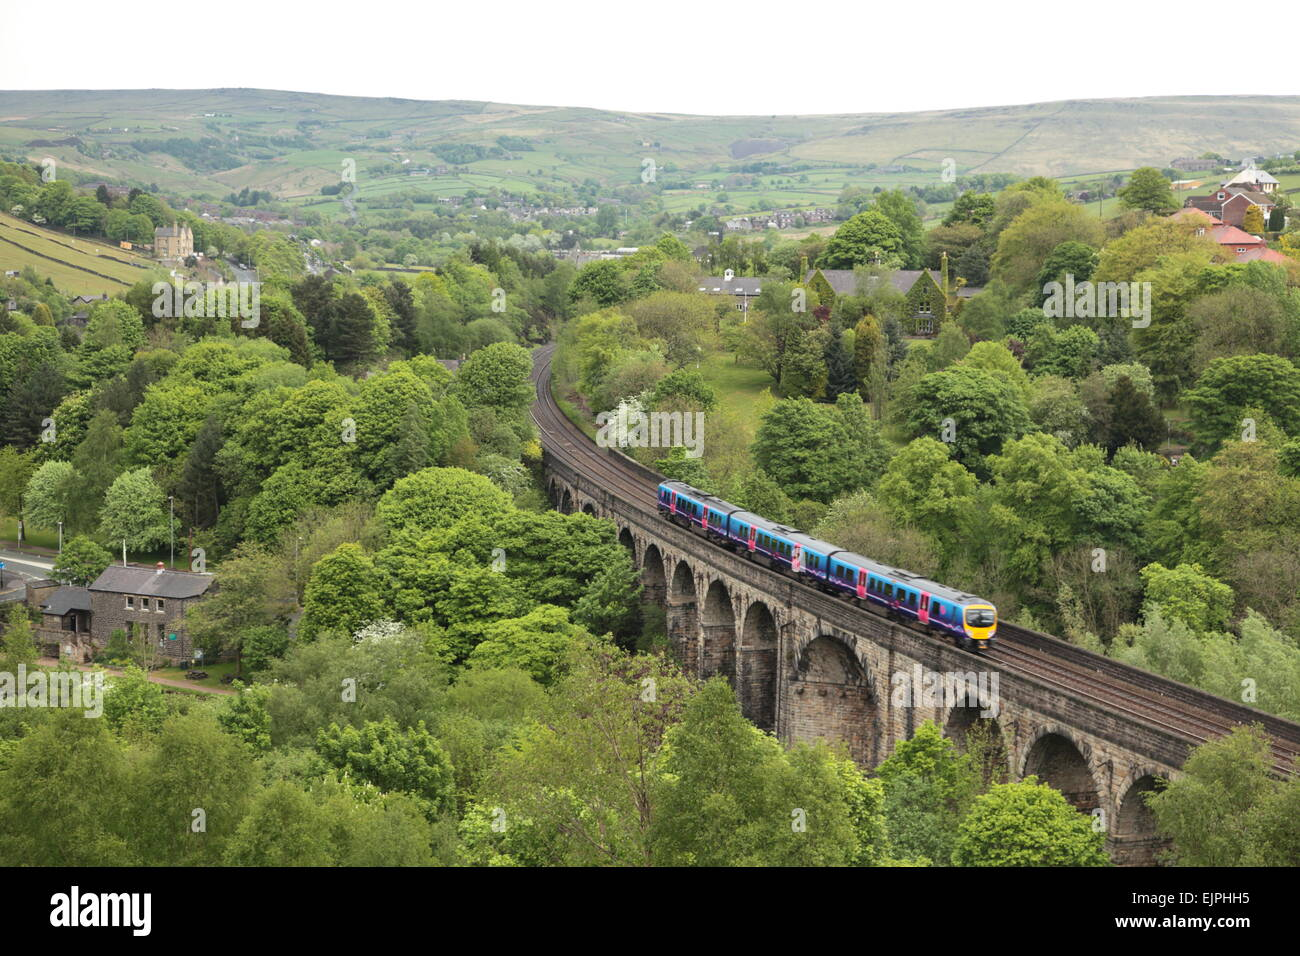 A First TransPennine express train crossing the viaduct at Brownhill, Dobcross, England heading for Manchester. - Stock Image